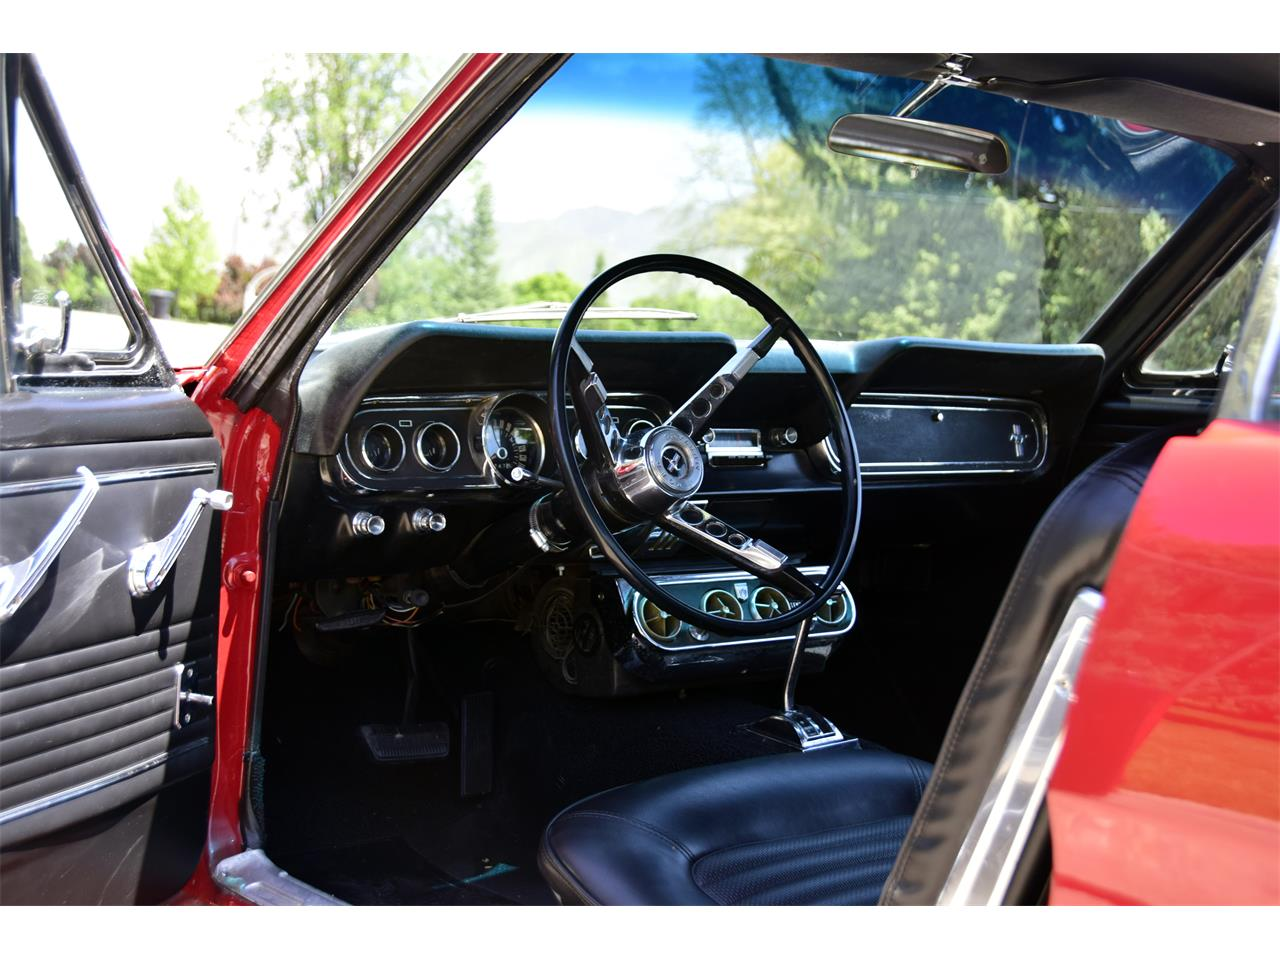 Large Picture of Classic '66 Ford Mustang - $23,900.00 - QPZ1